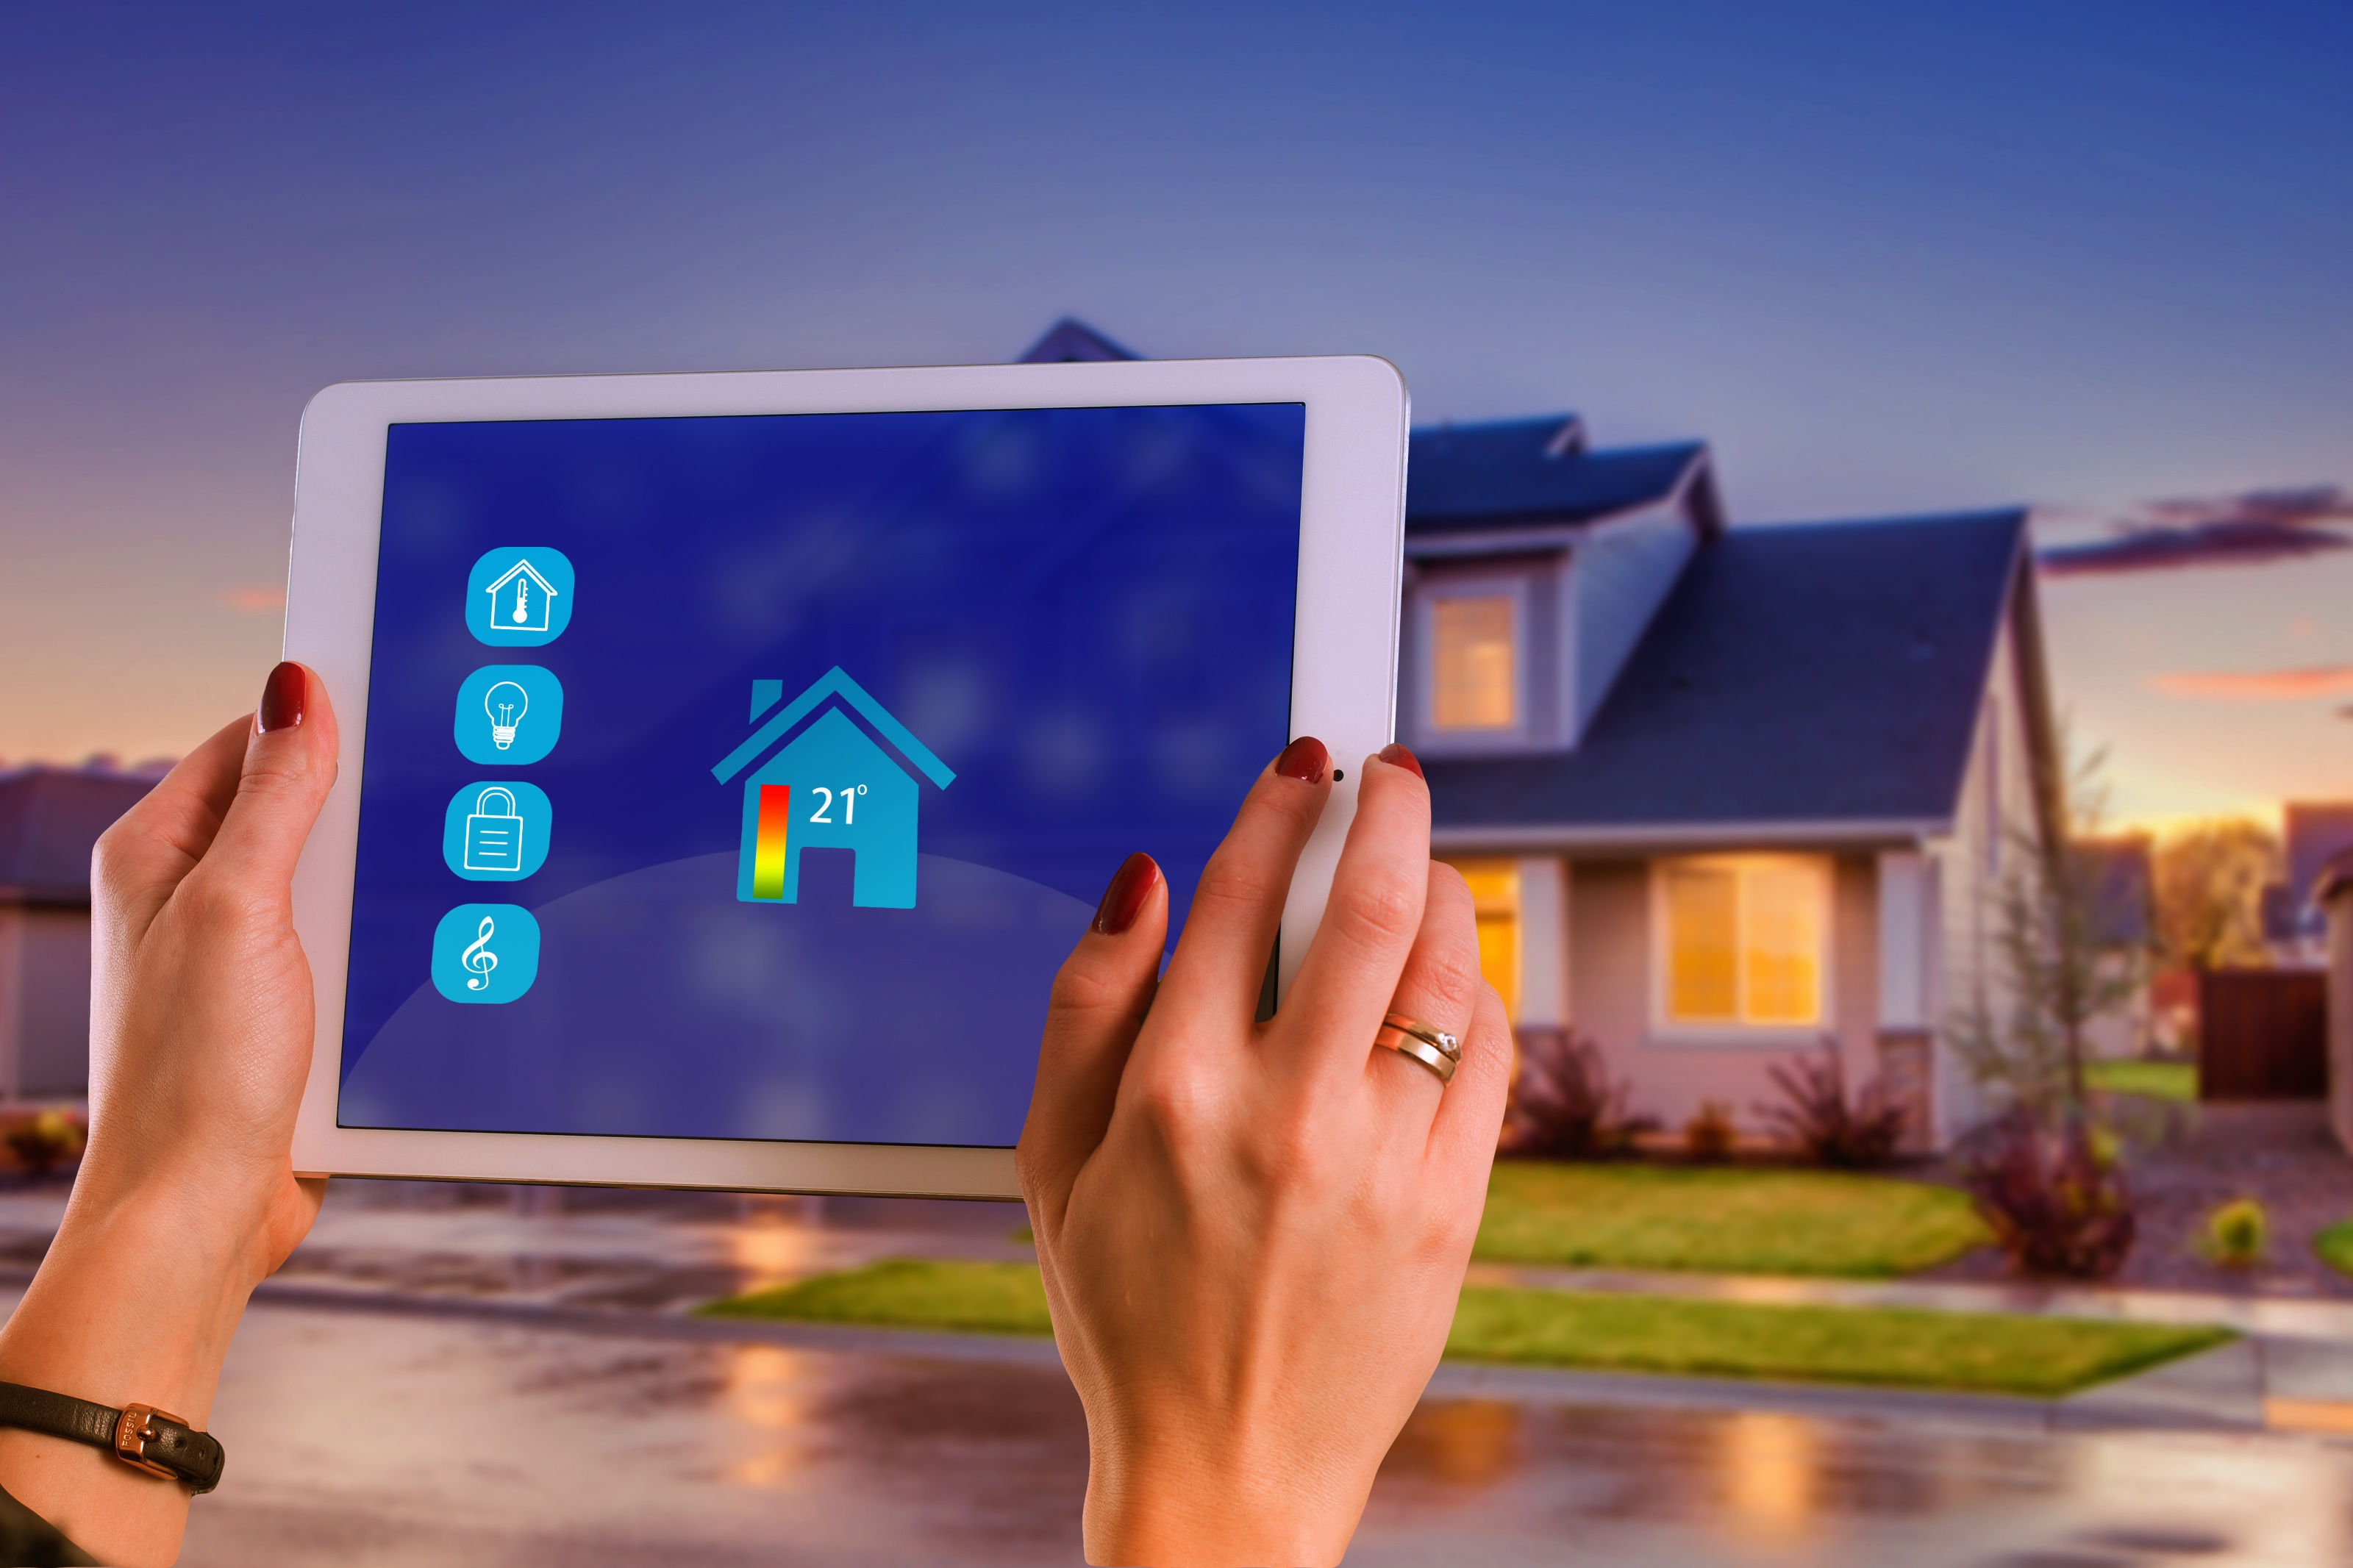 Tech-savvy buyers looking for homes to match